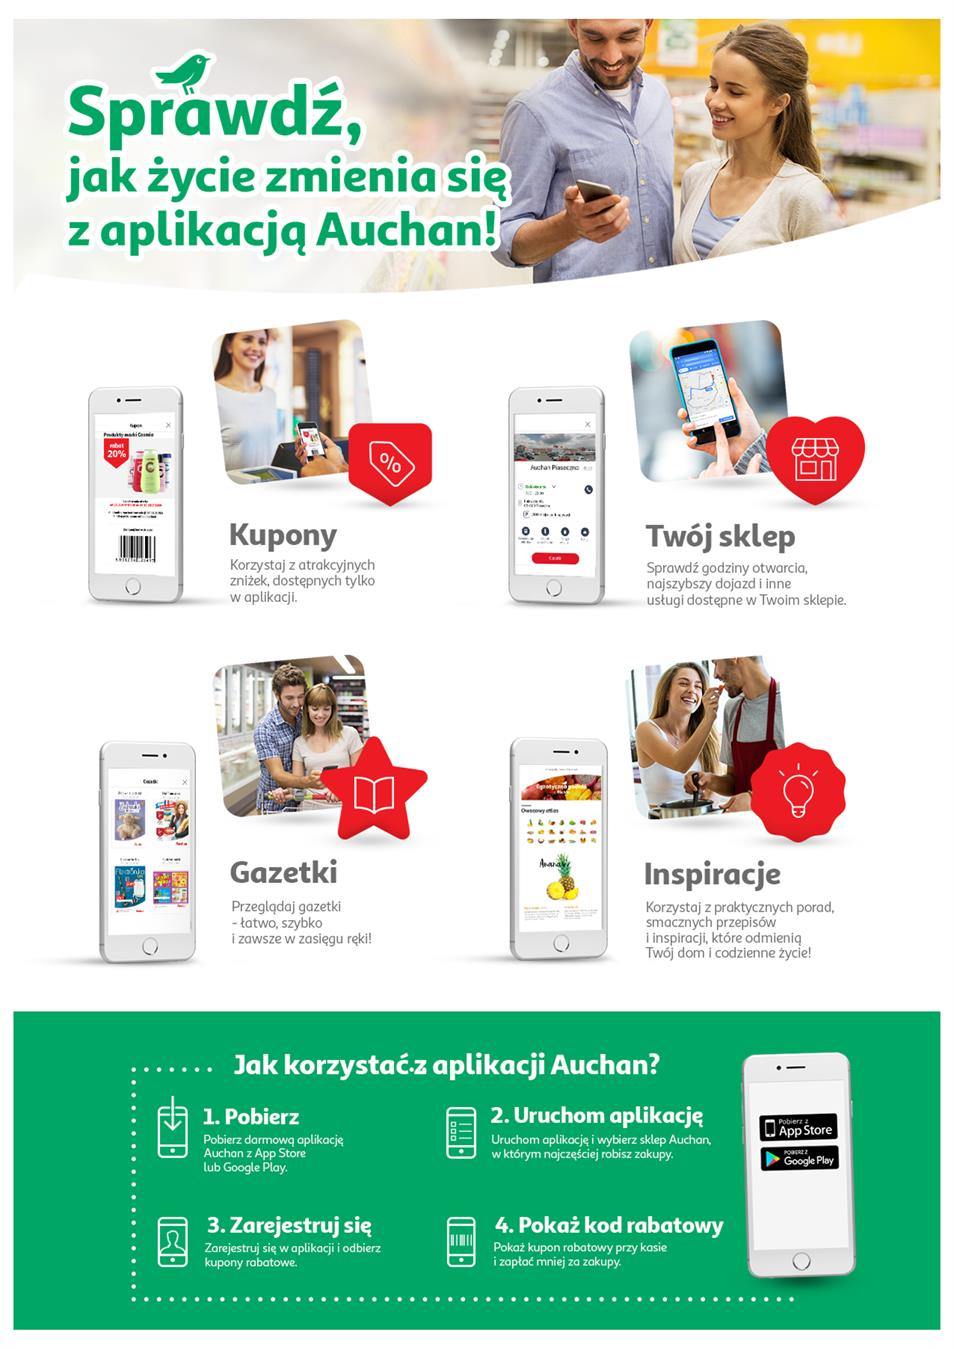 Gazetka Auchan Polska Sp. z o.o. nr 3 od 2019-01-10 do 2019-01-23